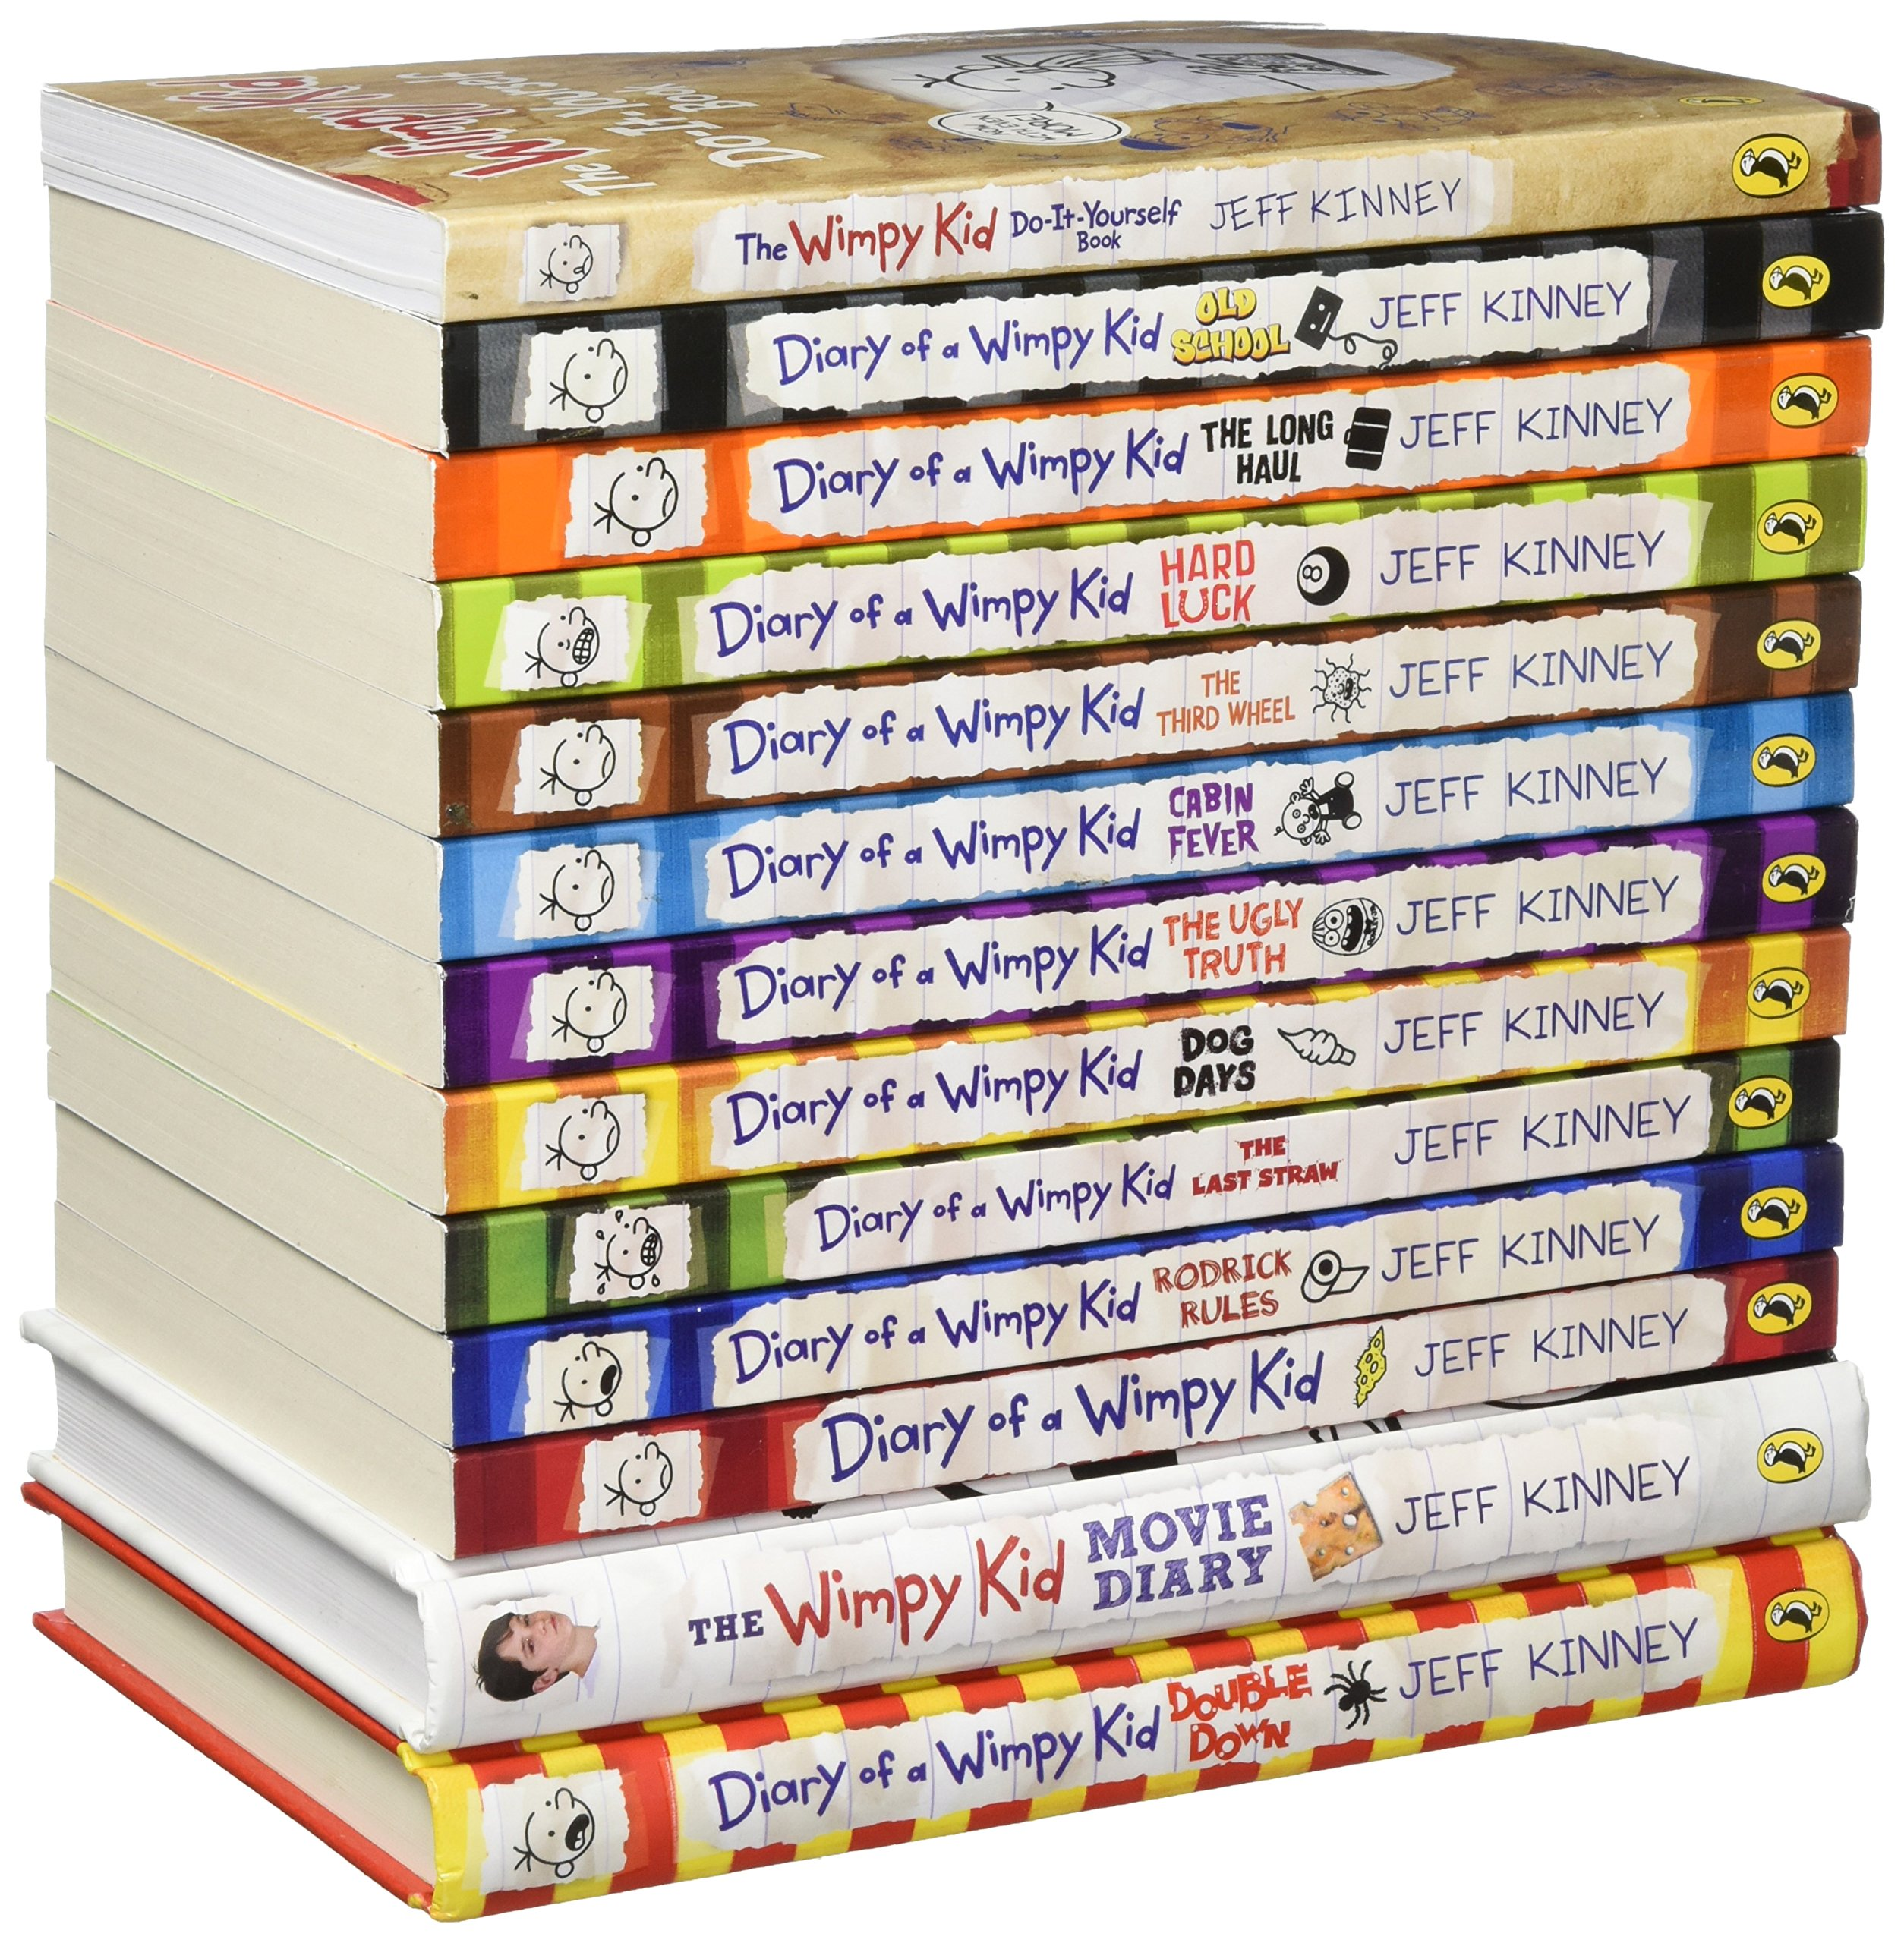 Diary of a wimpy kid collection 13 books set double down old diary of a wimpy kid collection 13 books set double down old school hard luck third wheel cabin fever the ugly truth dog days do it yourself book solutioingenieria Images